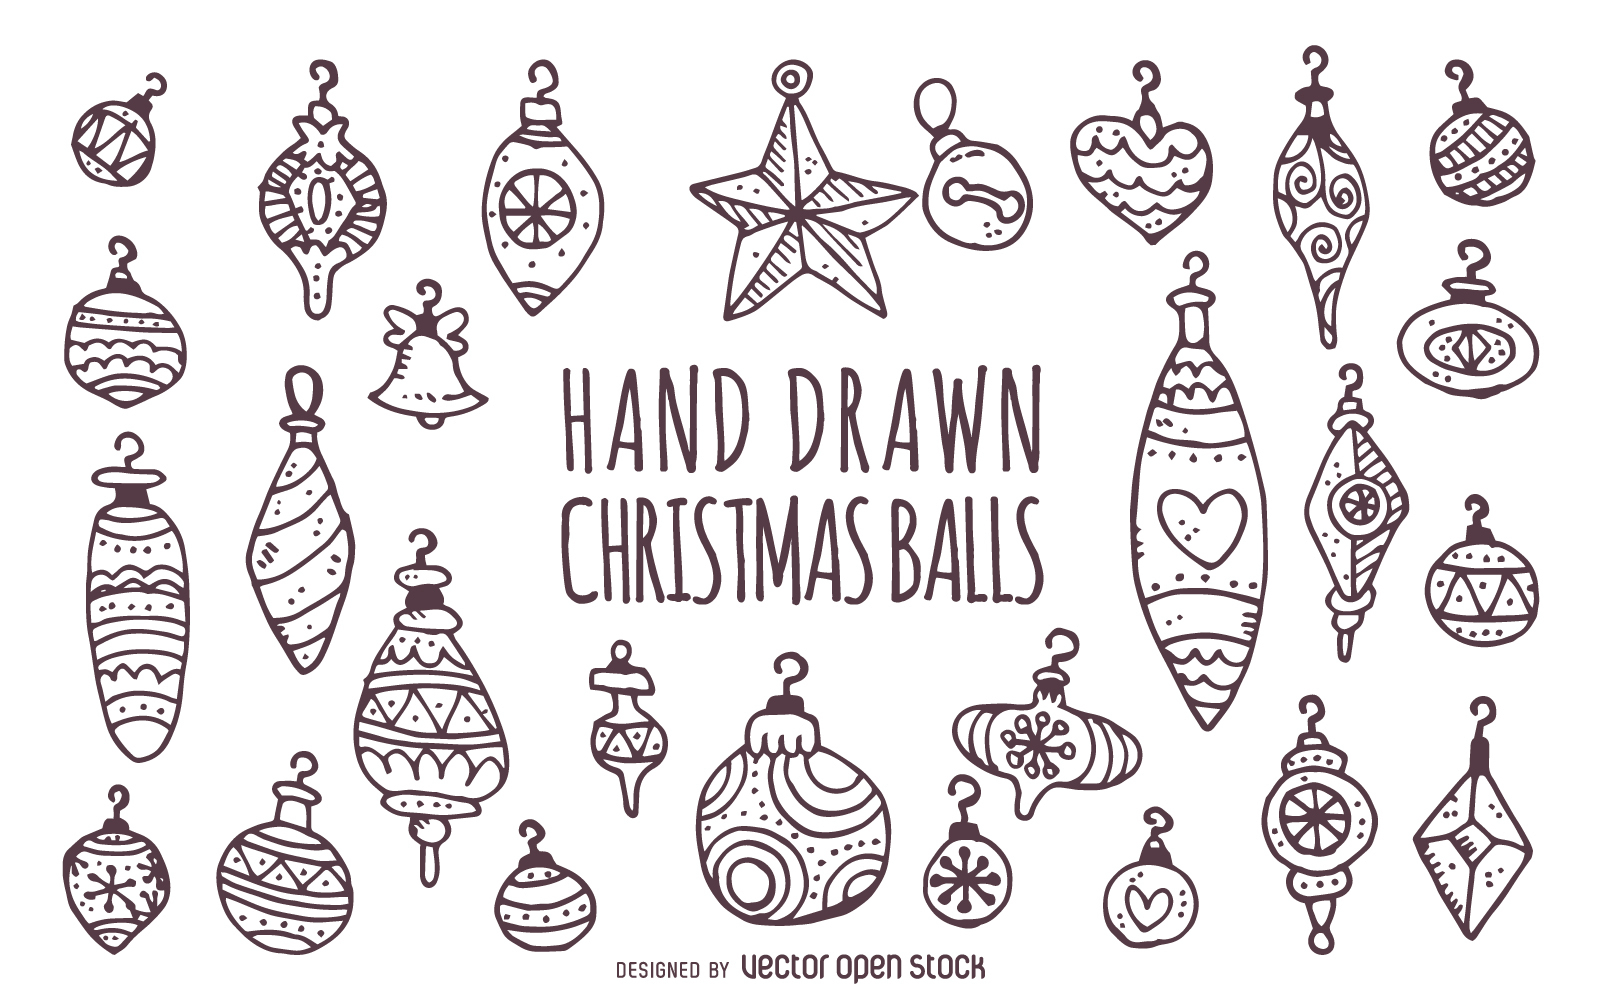 Drawn ornamental black and white Ornaments Large set 1600x1000px Hand